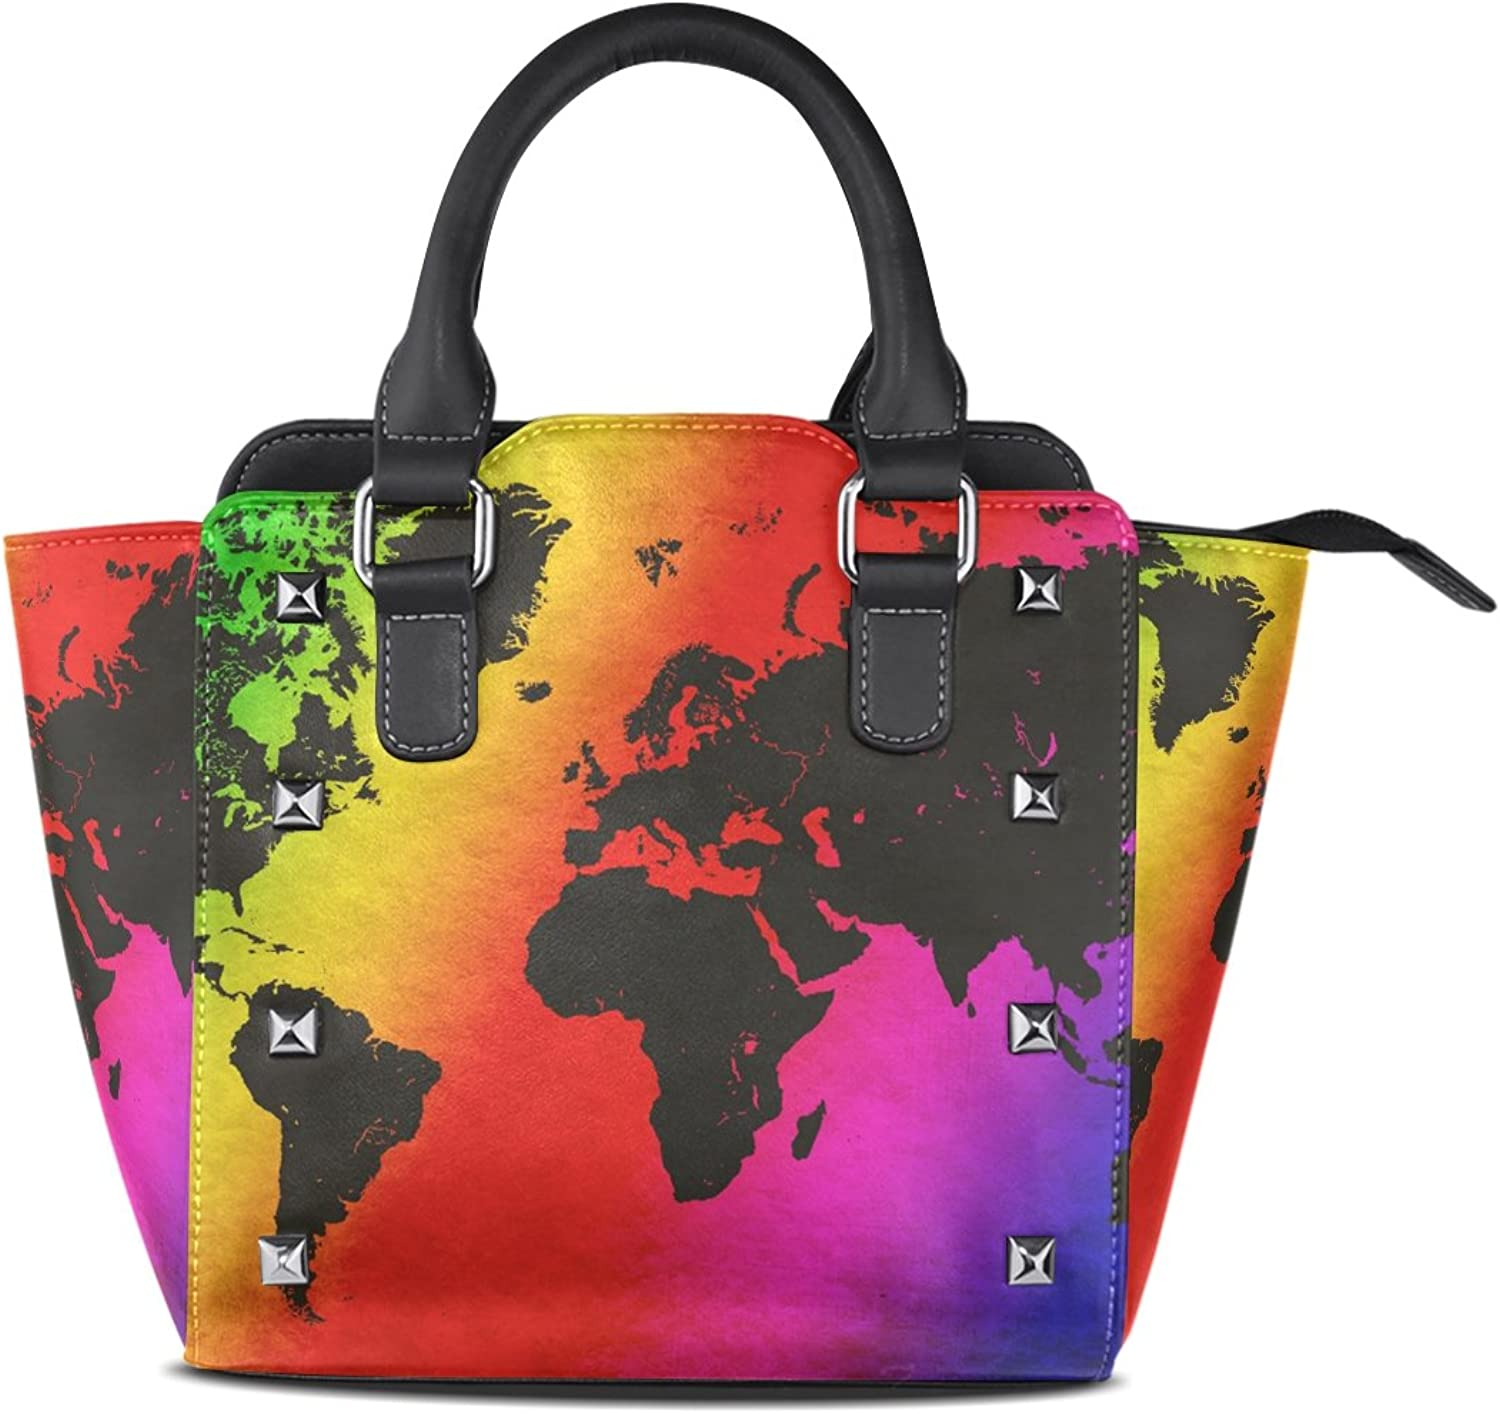 Sunlome Grunge World Map Vintage Print Handbags Women's PU Leather Top-Handle Shoulder Bags